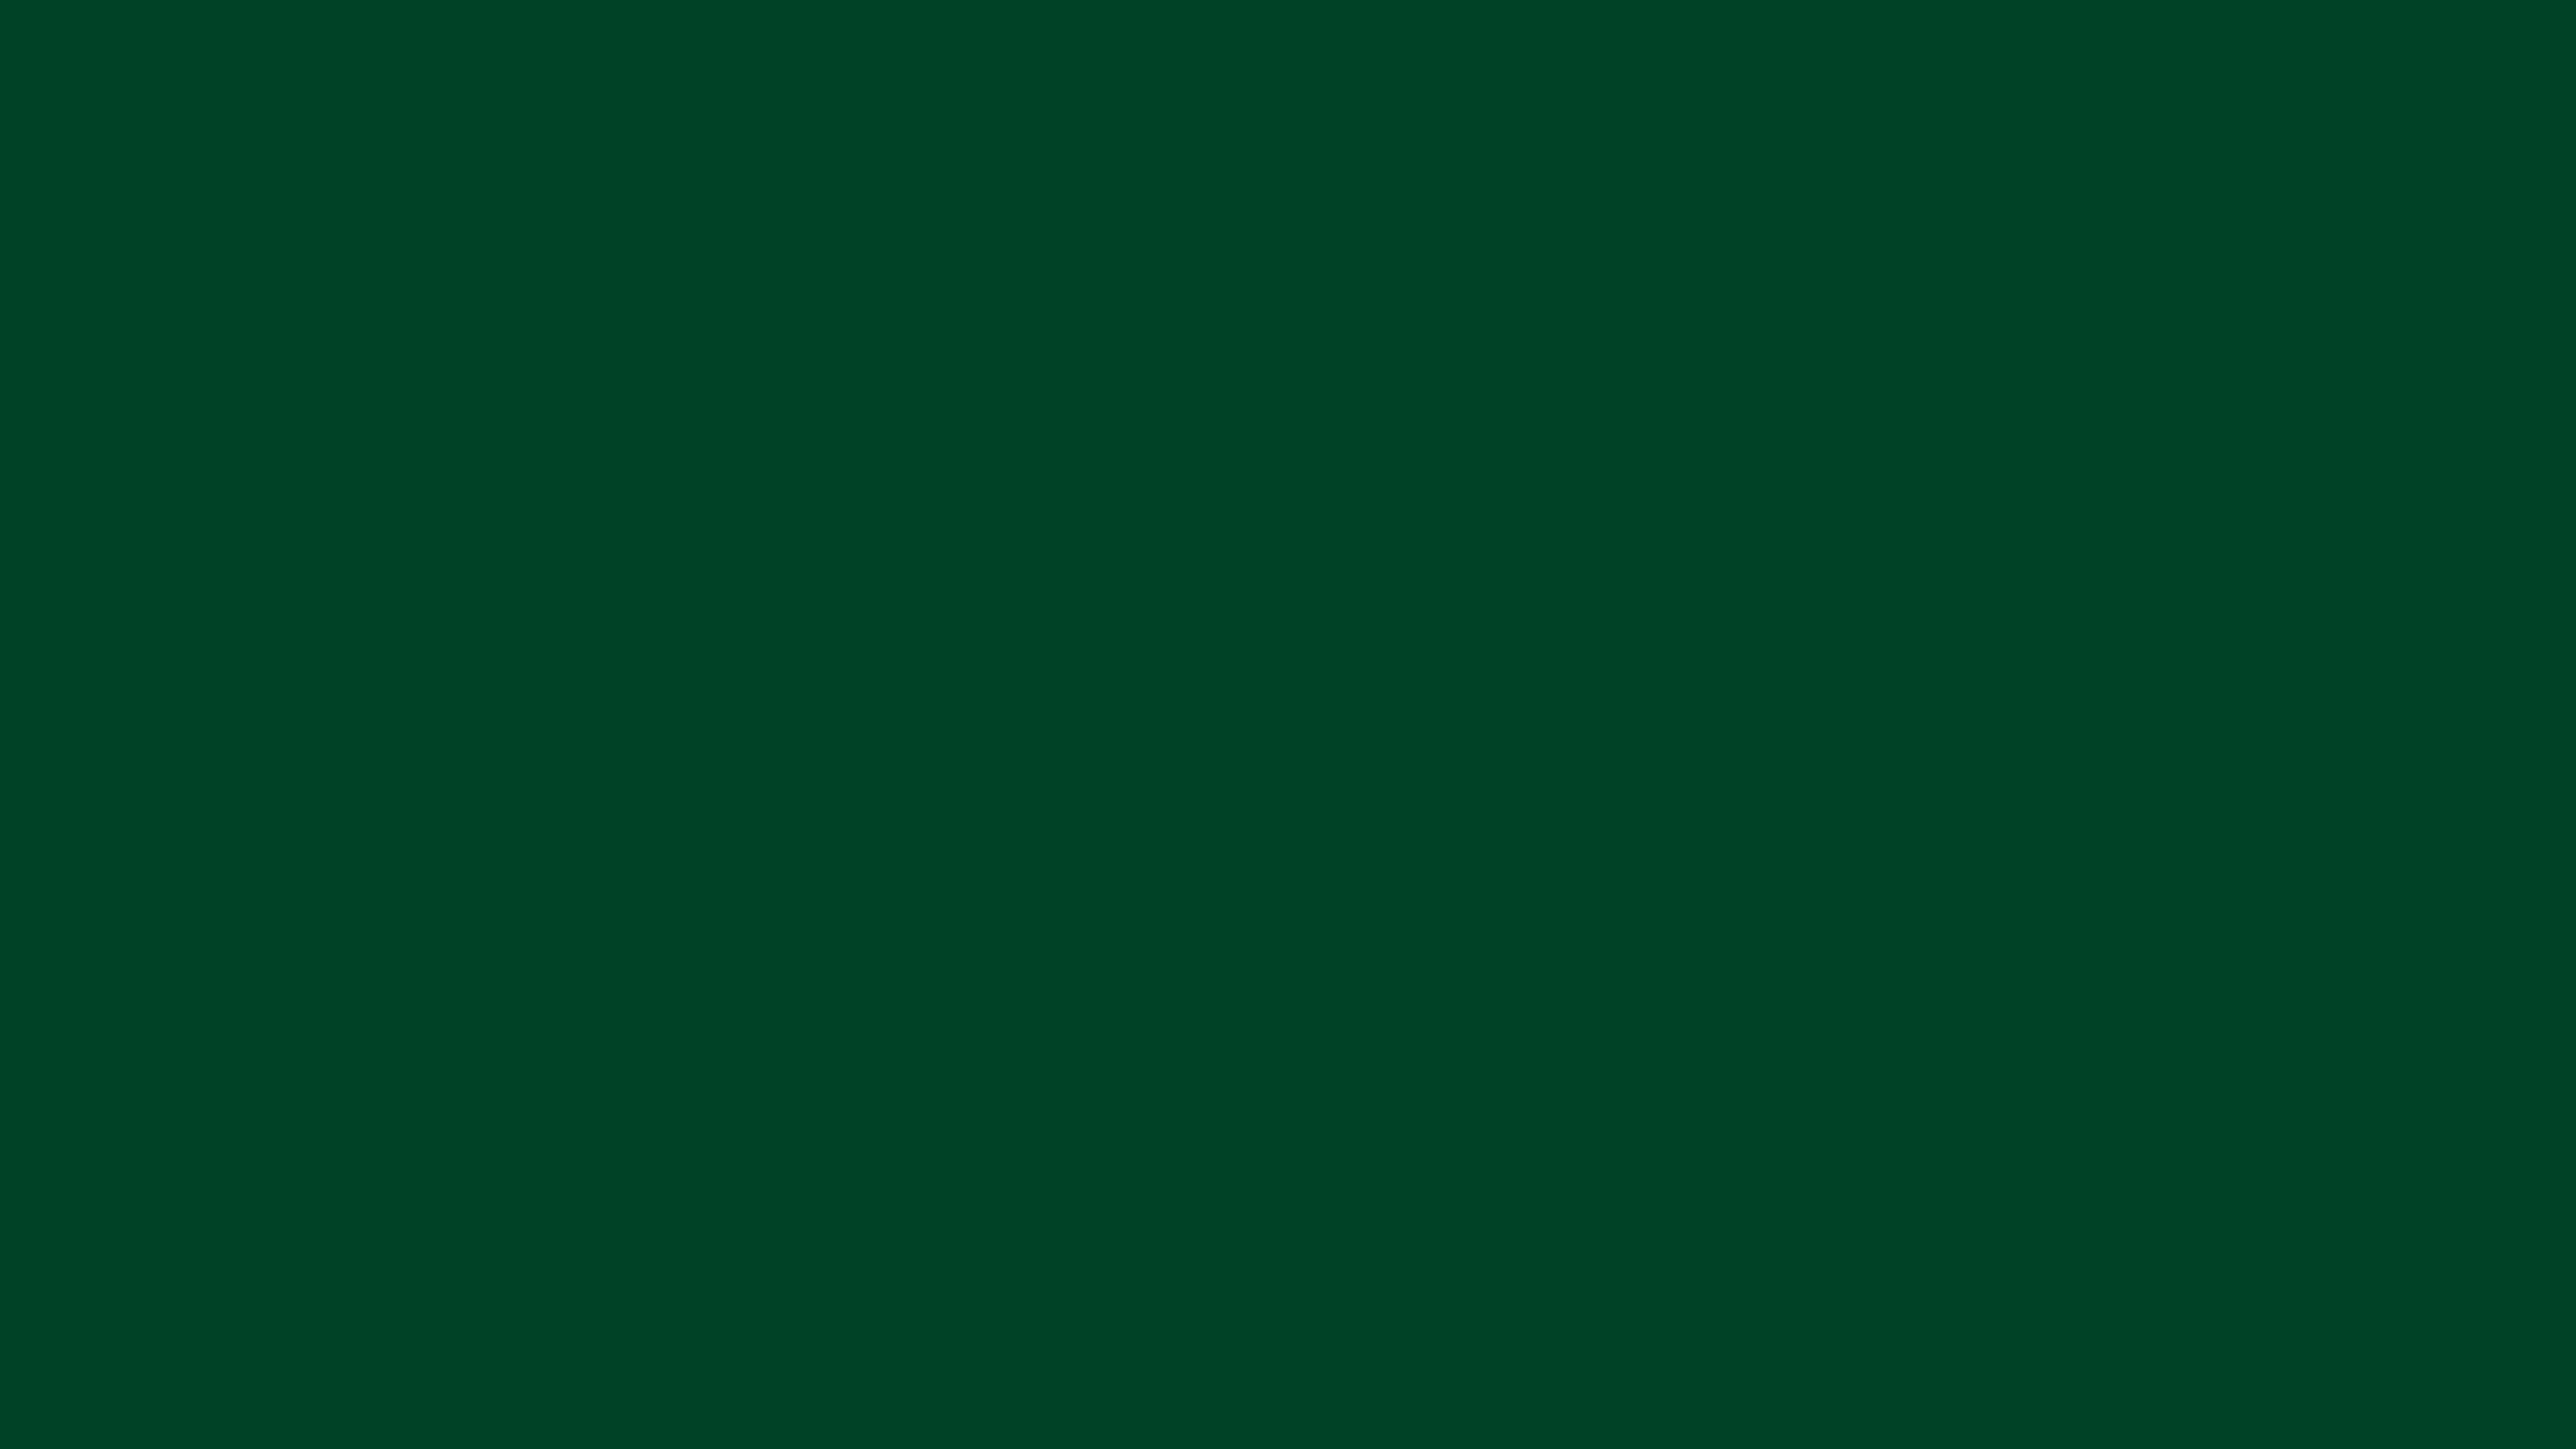 3840x2160 British Racing Green Solid Color Background